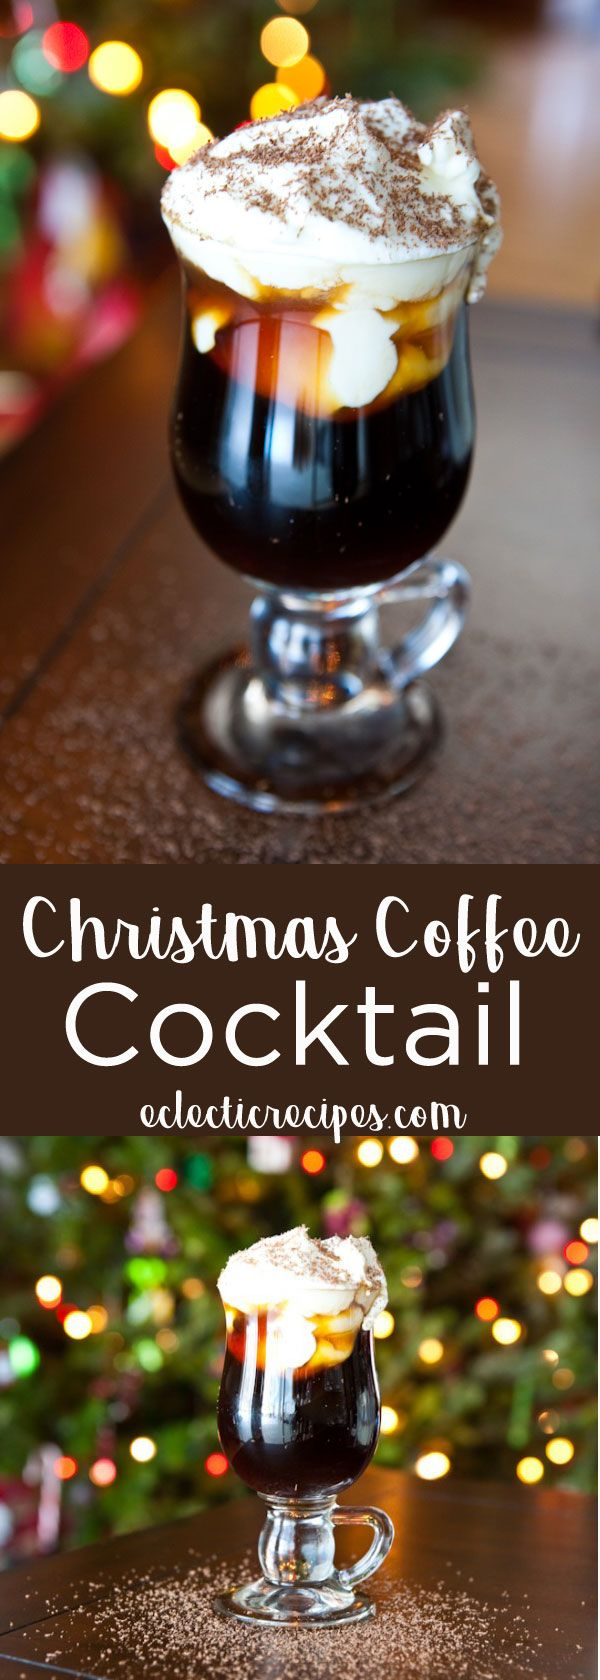 Eclectic Recipes How to Make a Christmas Coffee Cocktail for the Holidays (fun drinks alcohol)